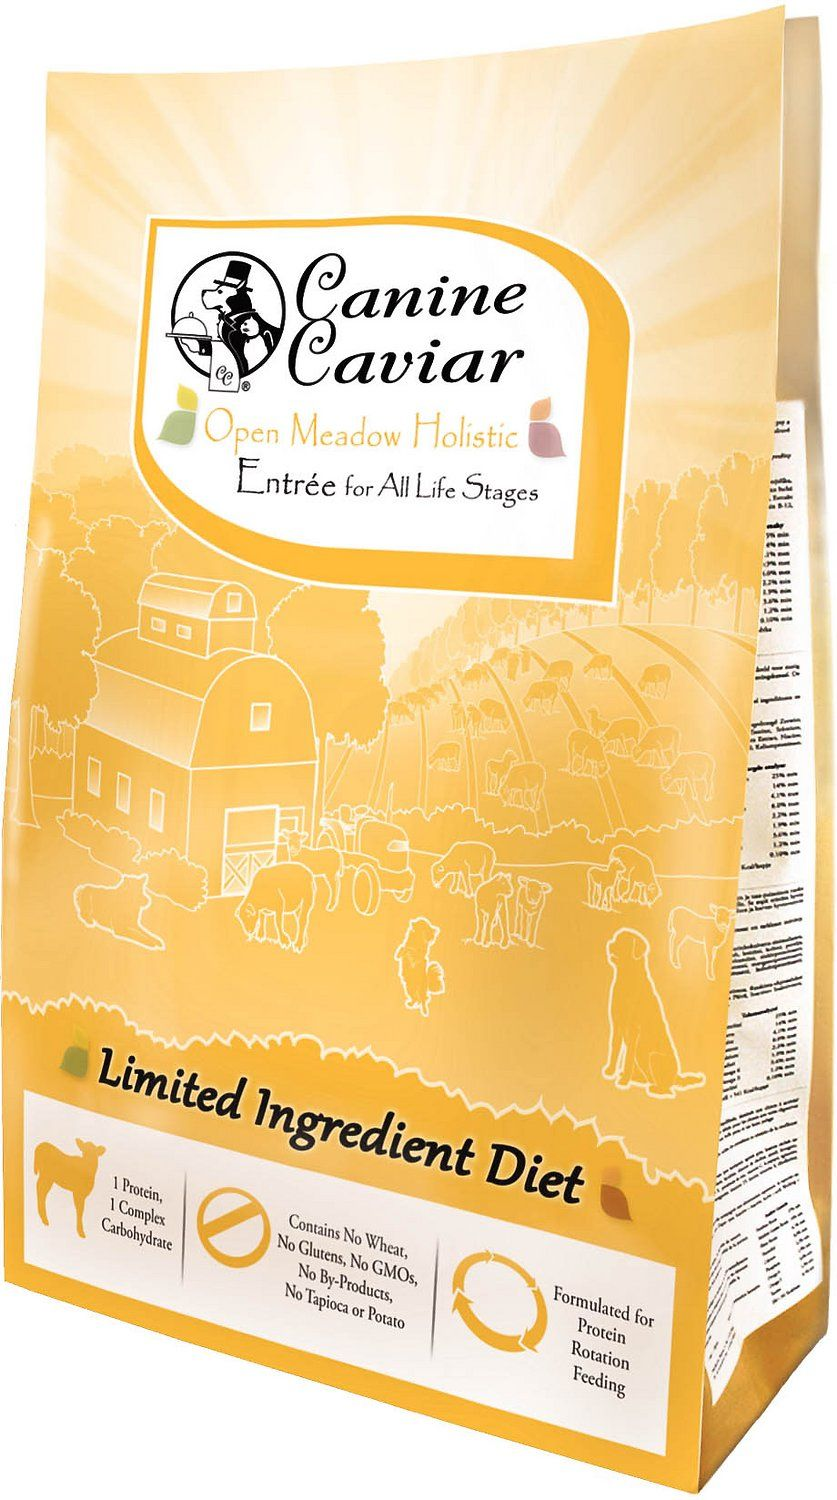 Canine Caviar Limited Ingredient Diet Open Meadow Holistic